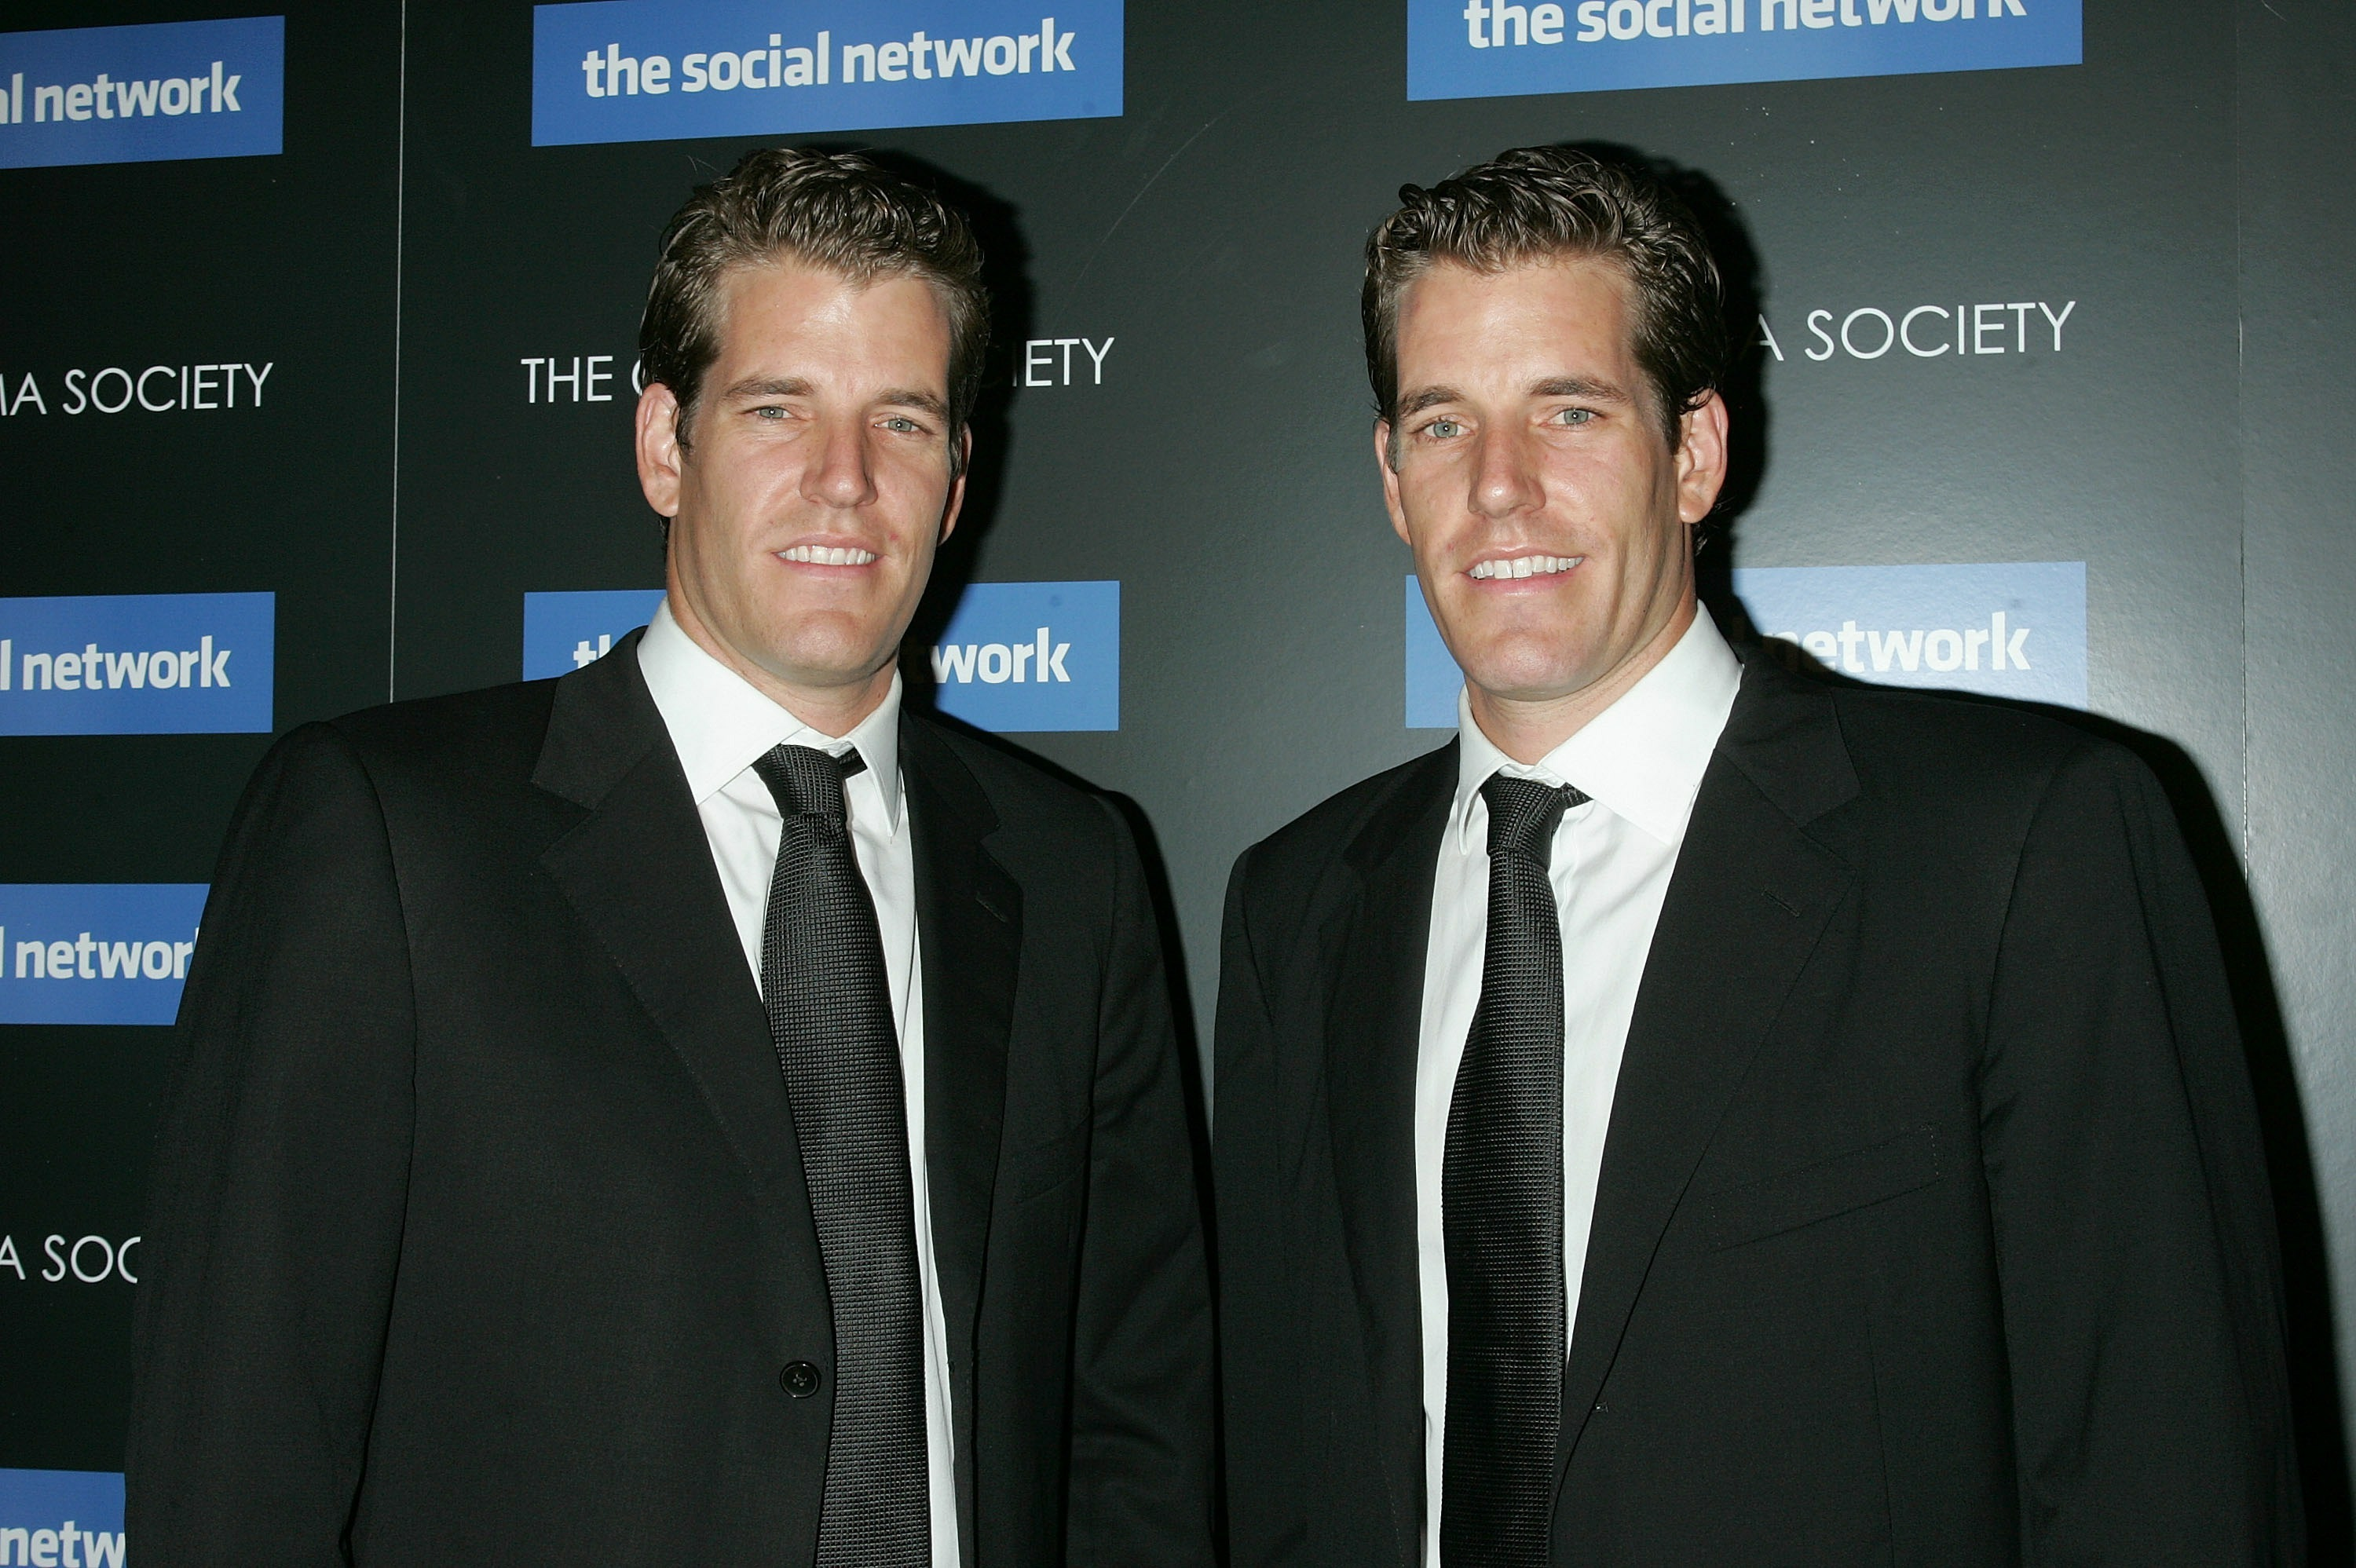 Winklevoss twins turn Zuckerberg's money into Bitcoin billions